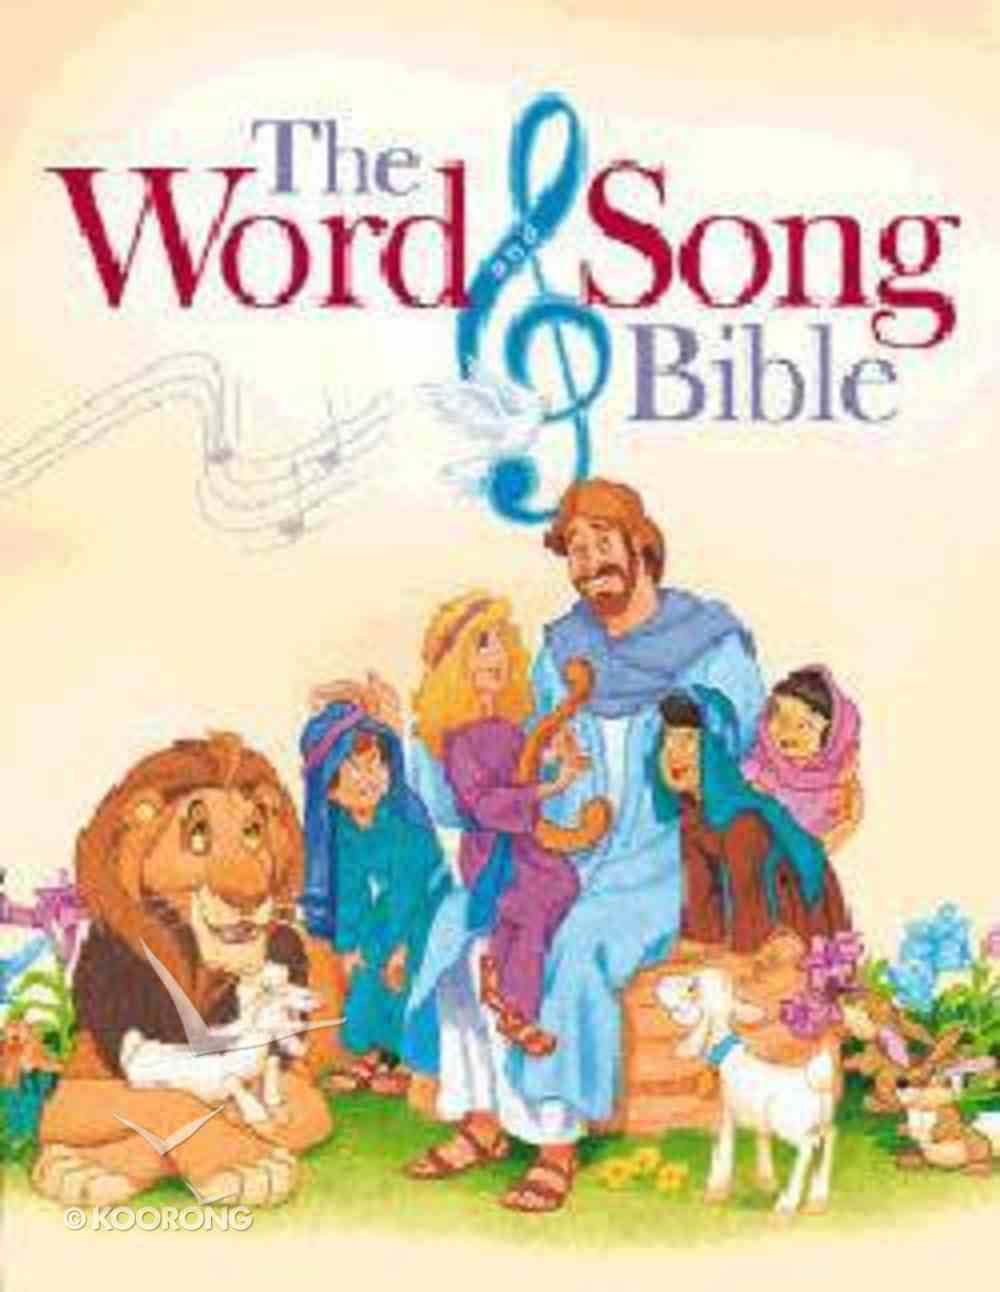 The Word and Song Bible Hardback